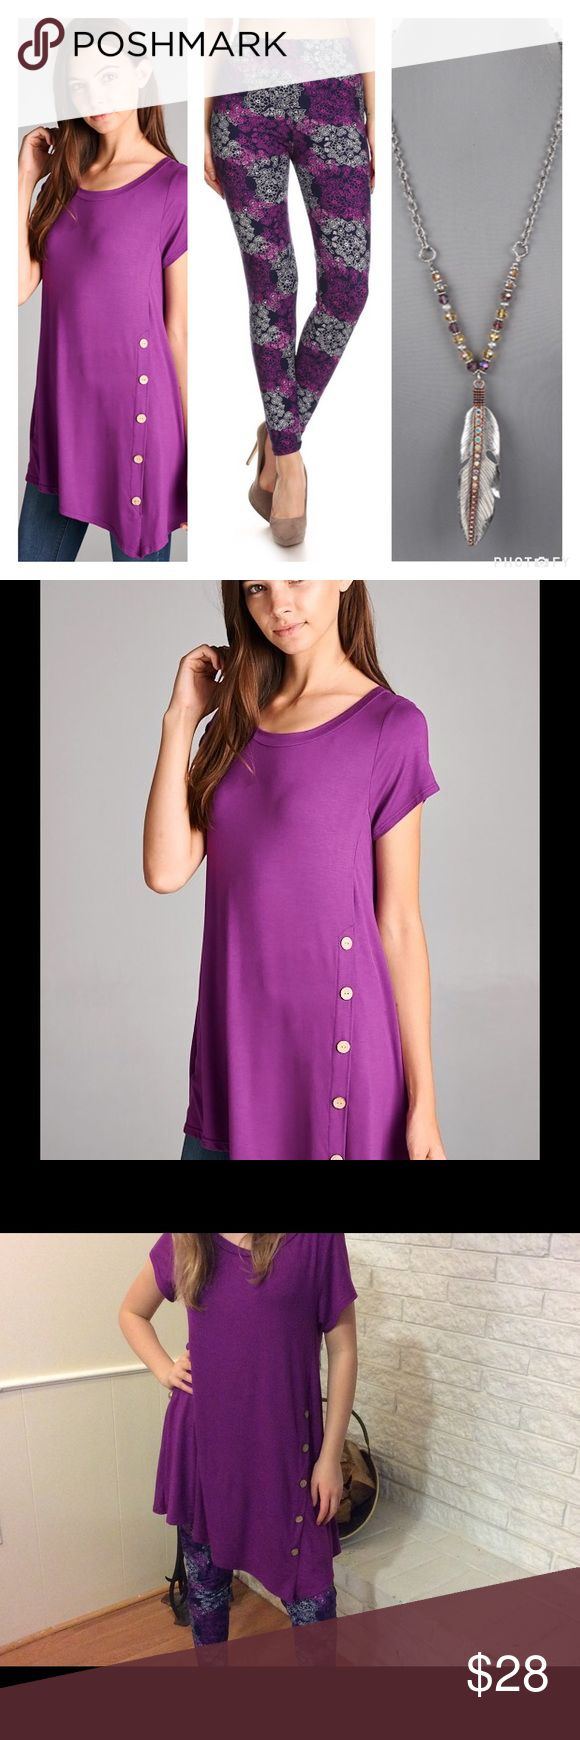 PRETTY PURPLE SIDE BUTTON TOP Lovely Purple Short Sleeve Top Cute Side Buttons Asymmetrical Hem Gorgeous with Purple Print Leggings listed & the trendy necklace (necklace coming soon) Shop the whole look!  One Size Fits Most Polyester/Spandex  NO TRADES Southern Charm Boutique Tops